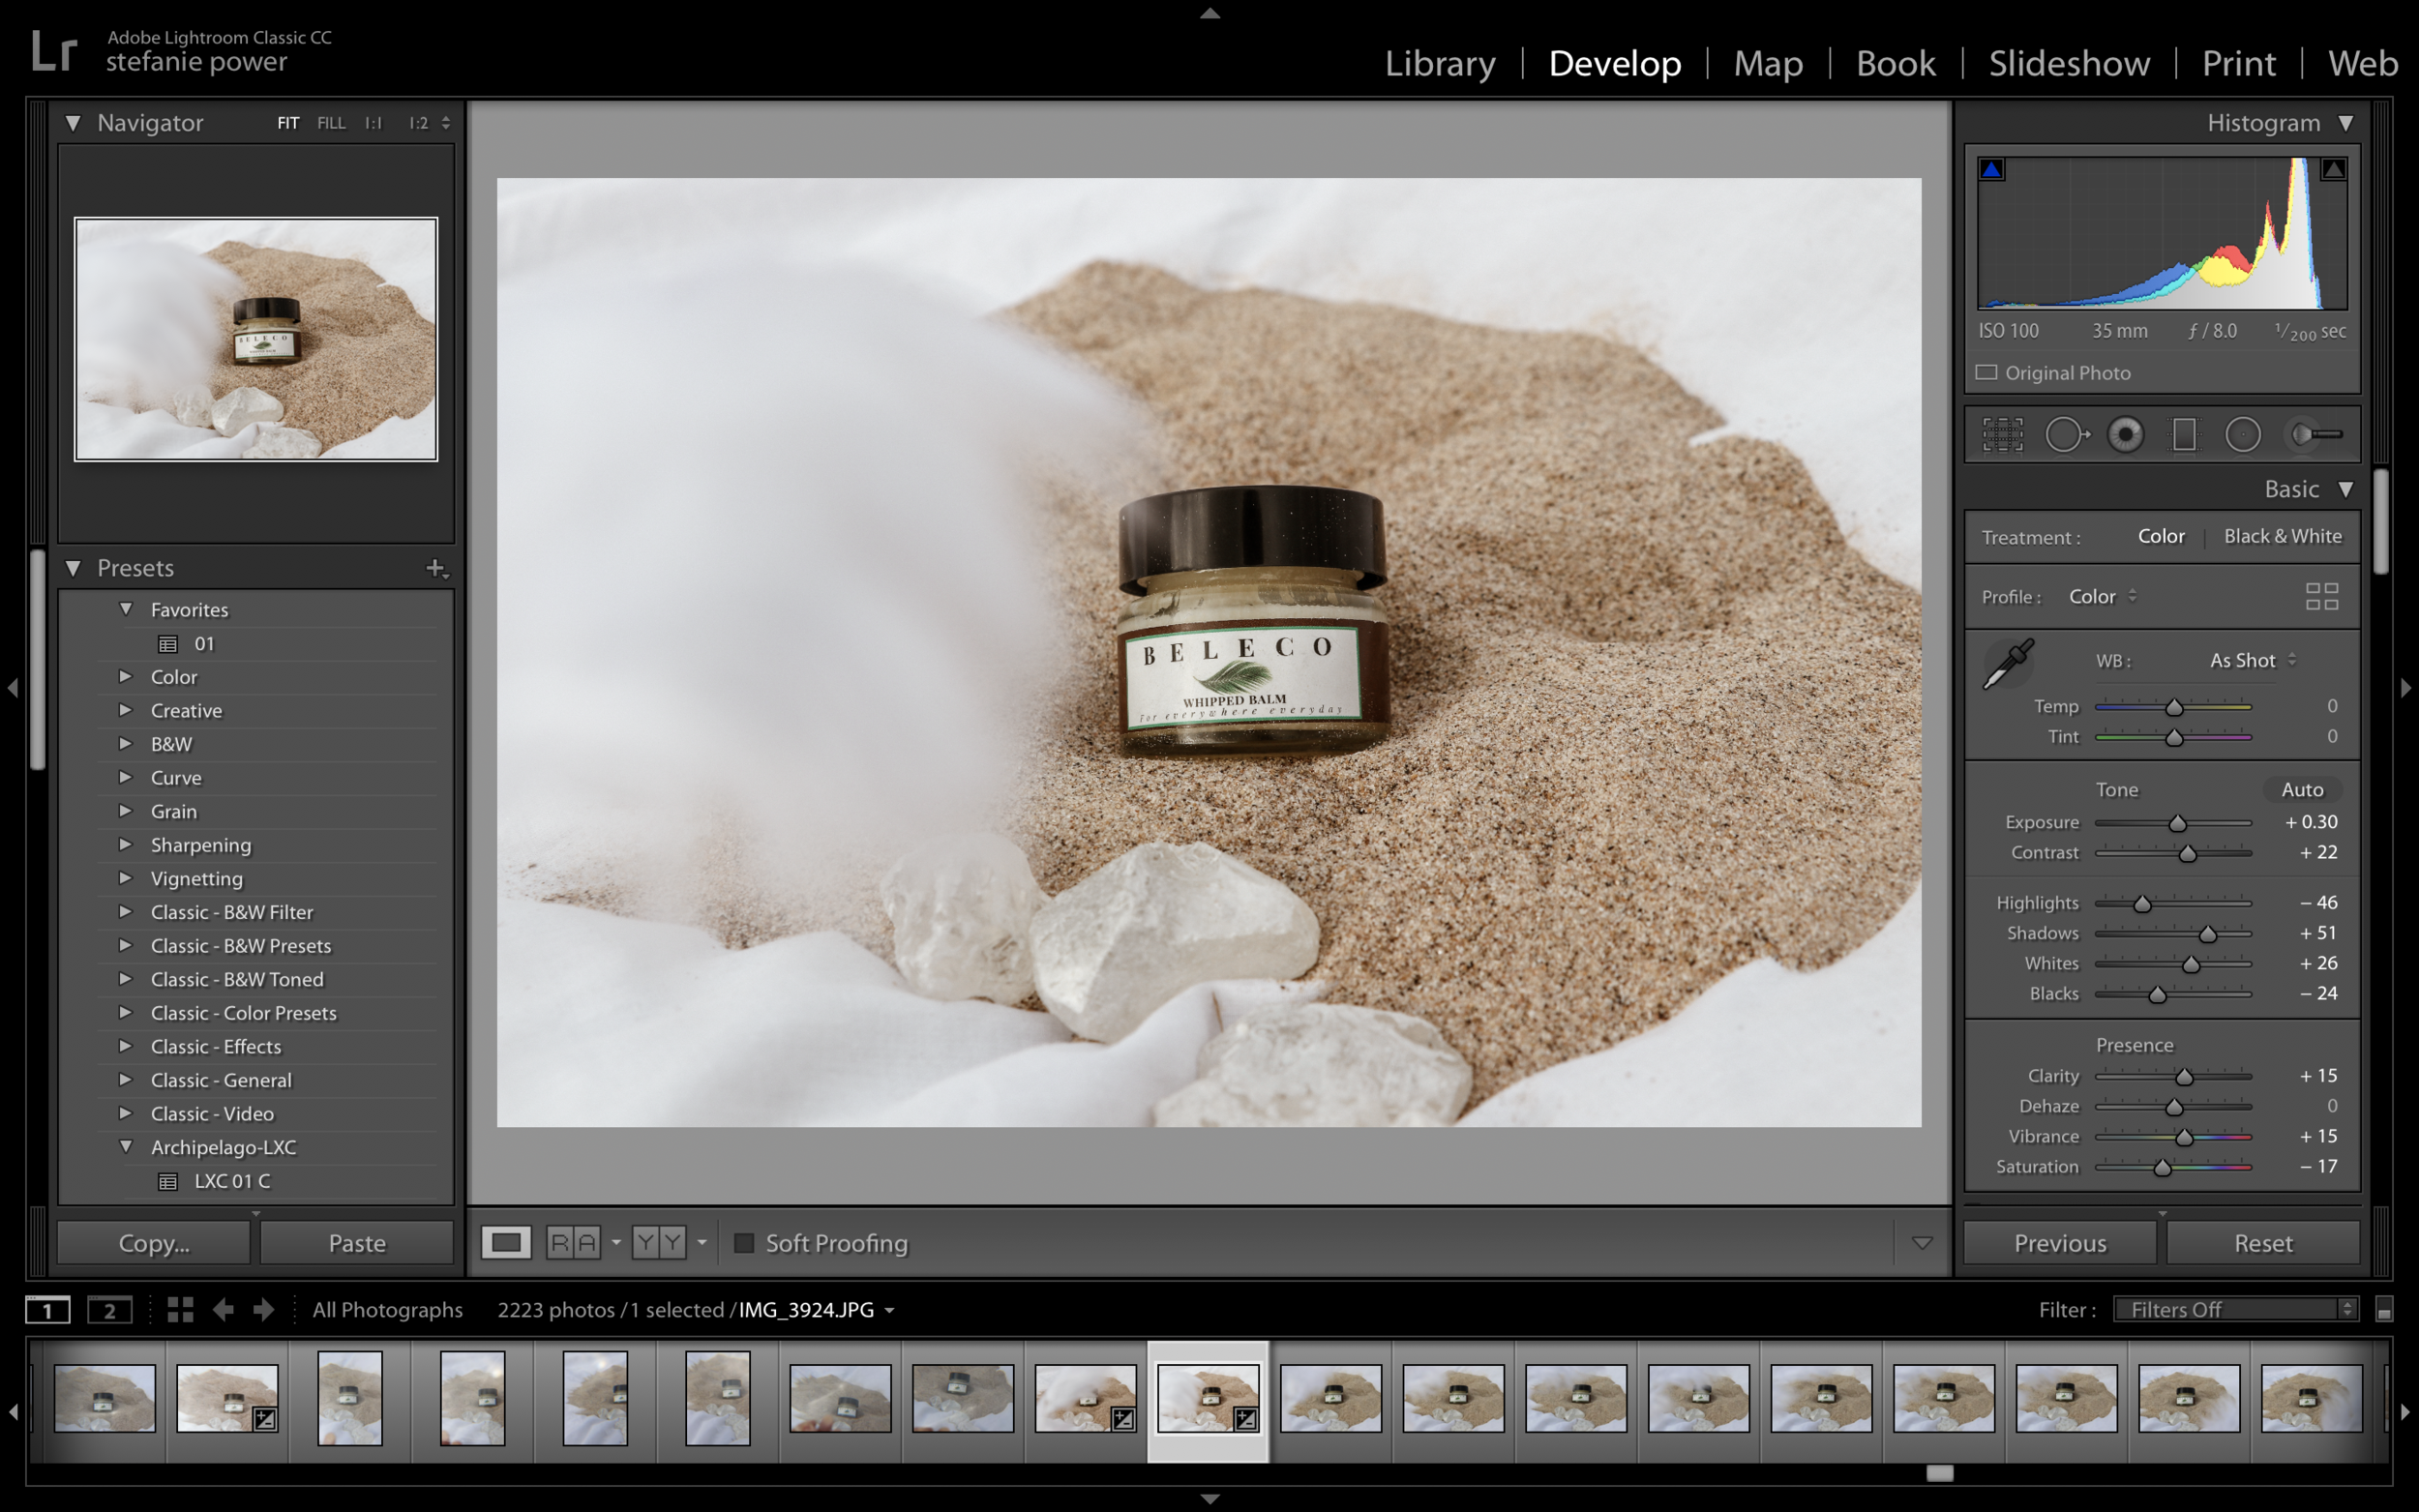 Recently, I opened up product shoots to my clients. Click through to see how I styled my first product shoot for organic body and lip balm, Beleco.